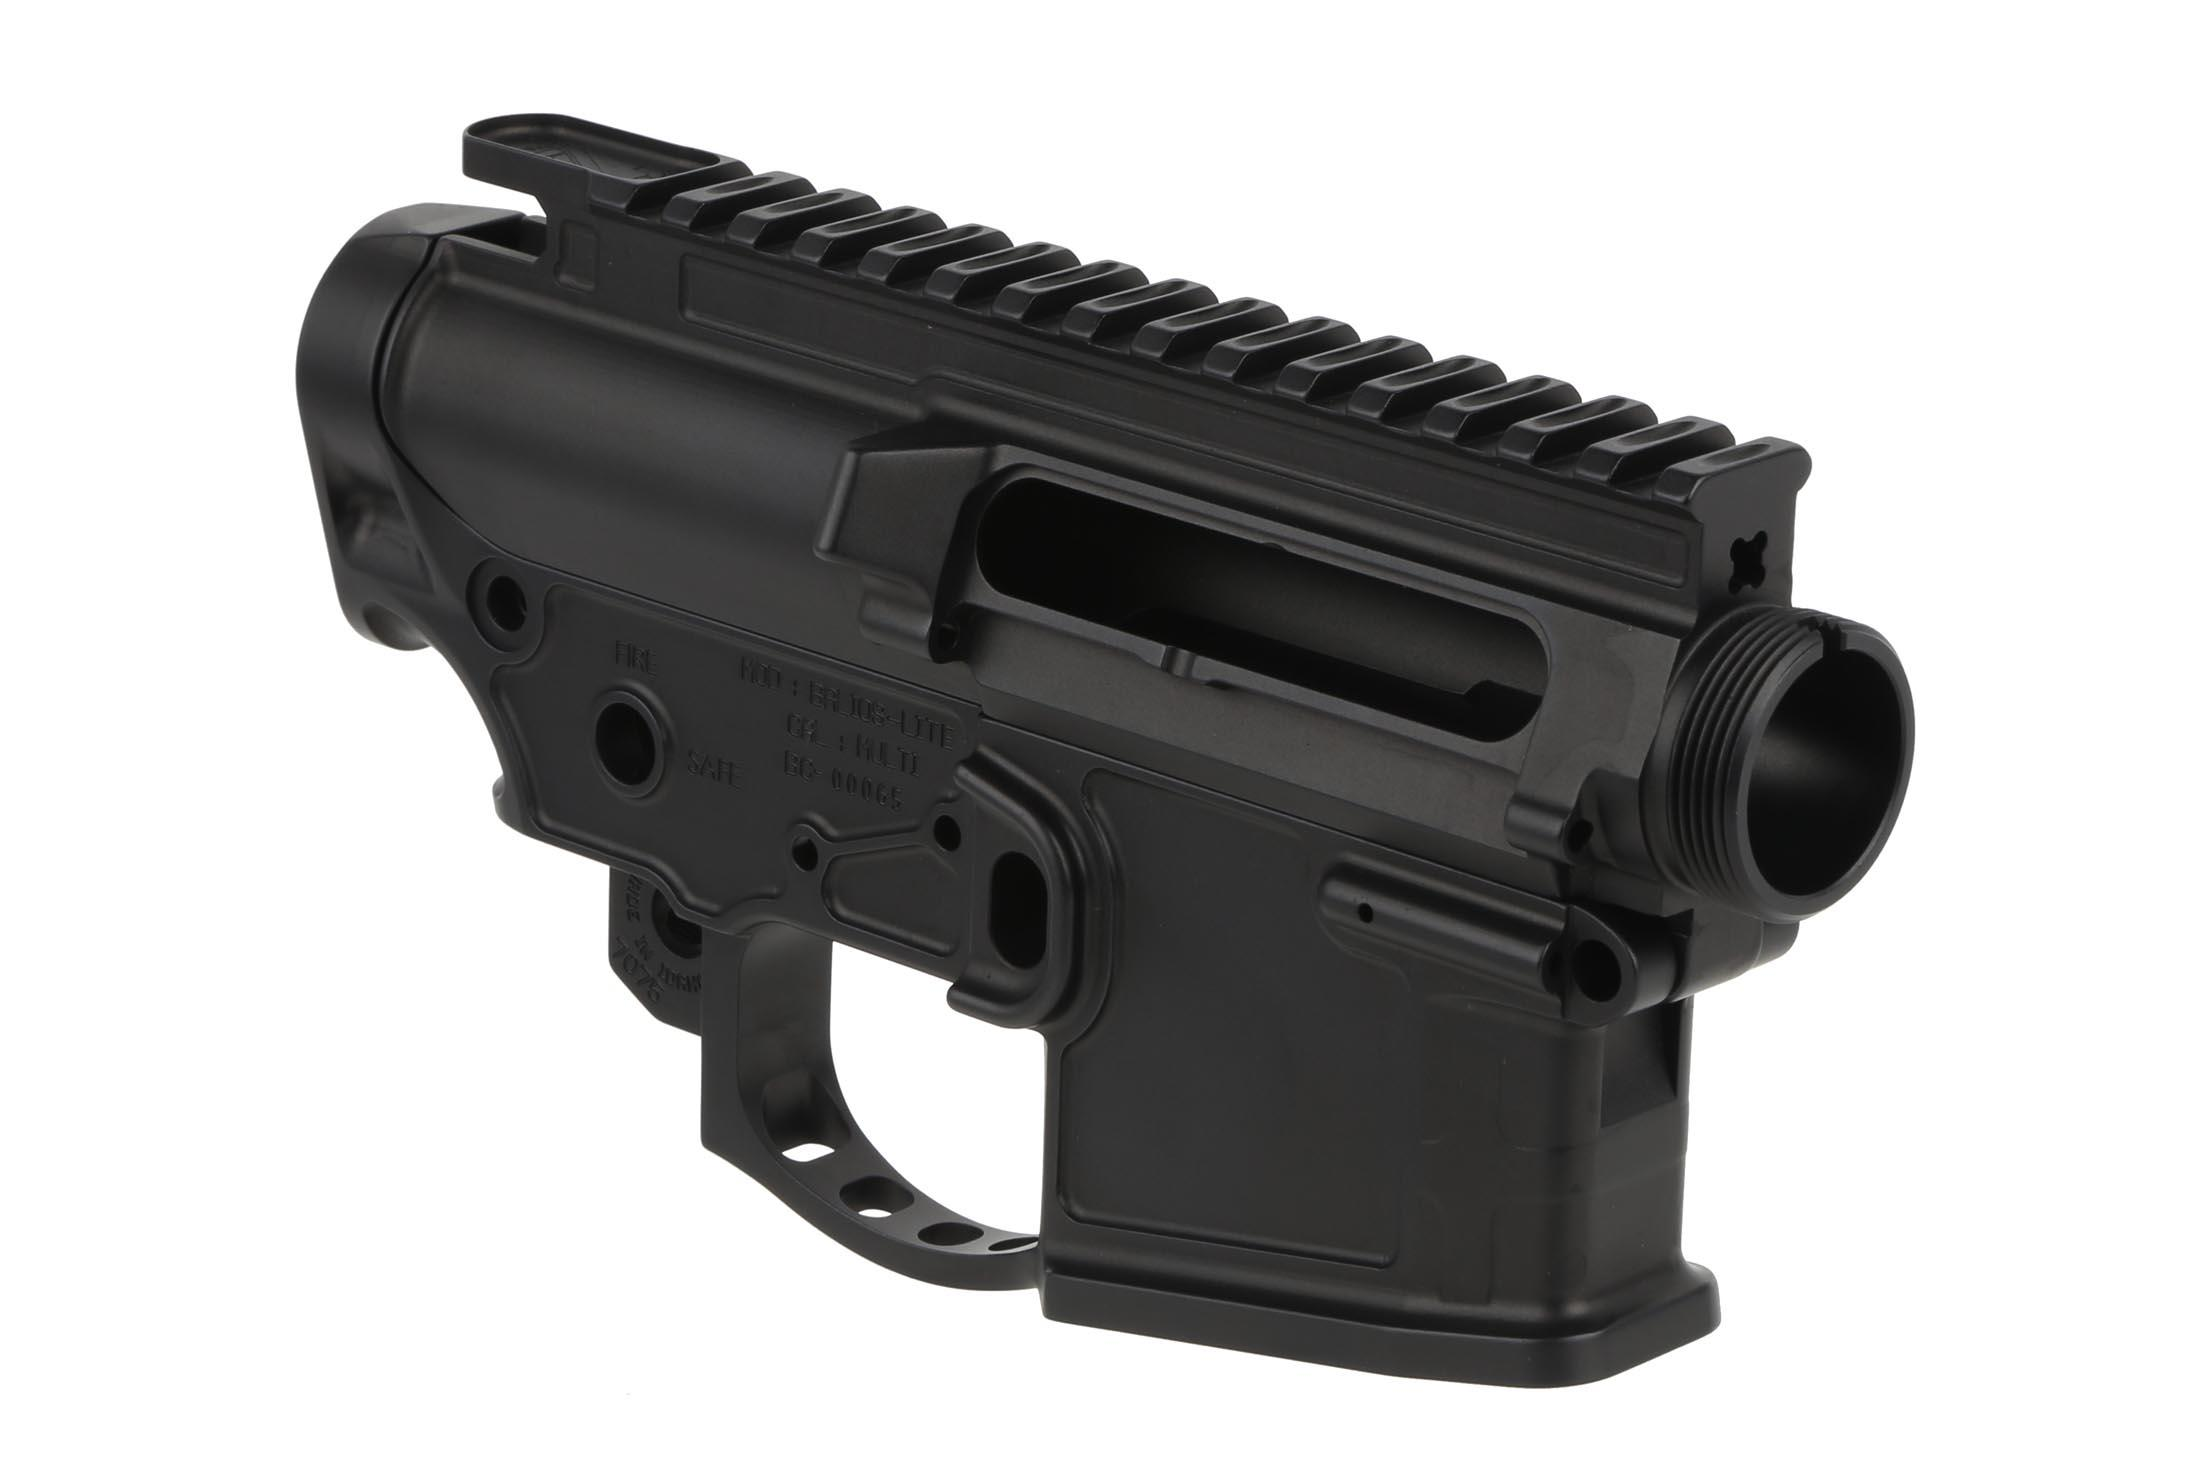 The 2A Armament Balios Lite receiver set features multiple lightening cuts to decrease weight